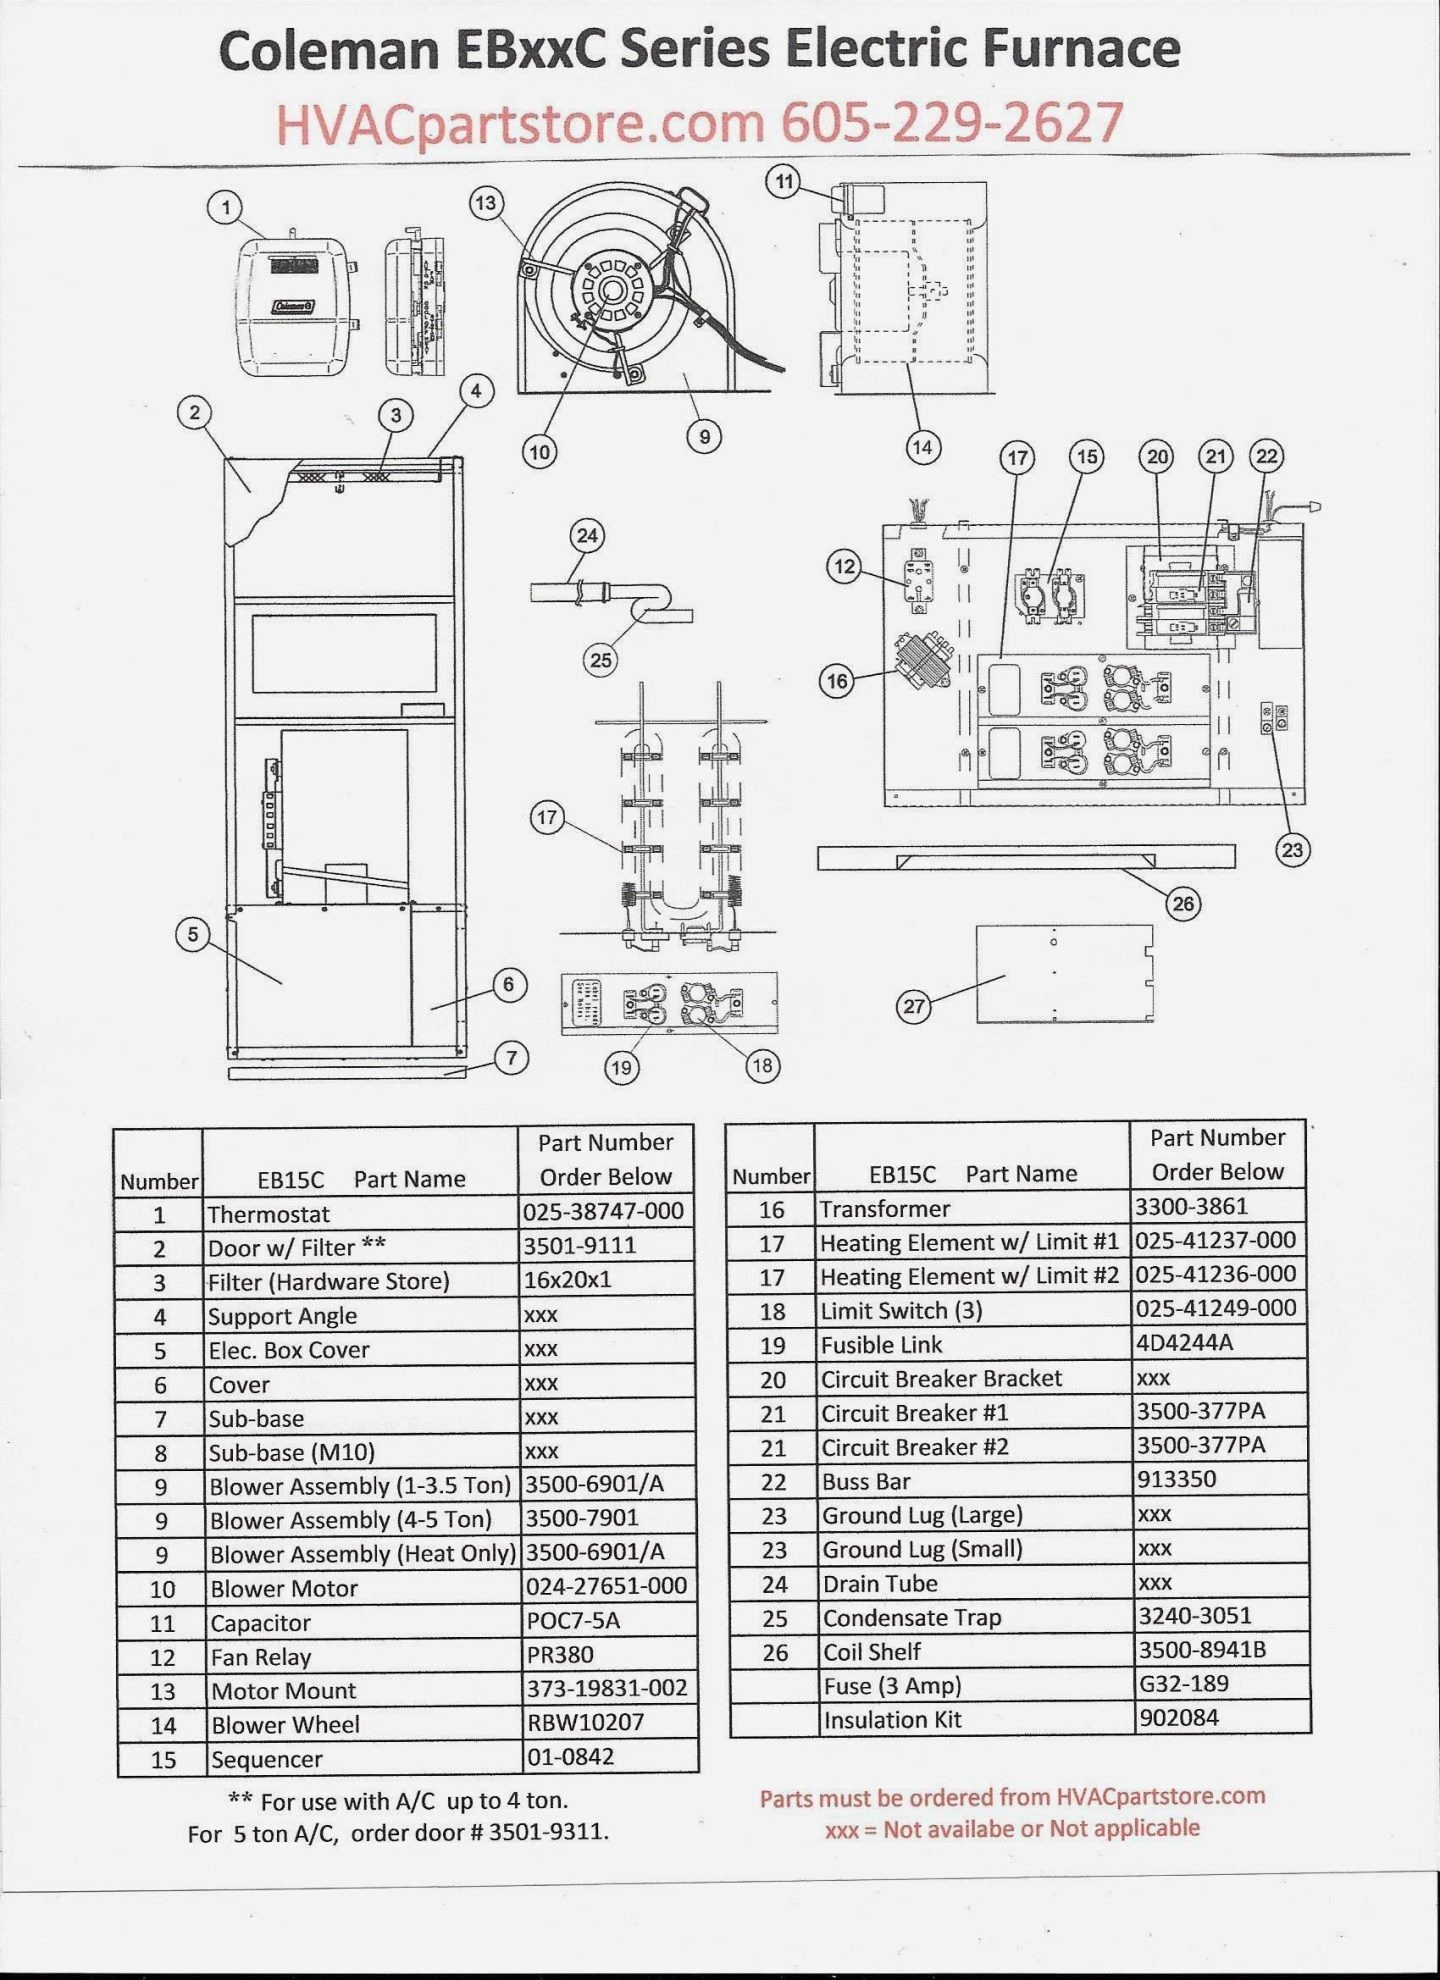 Furnace Blower Motor Wiring Diagram New Electric Furnace Fan Relay Coleman Electric Furnace Wiring Diagram